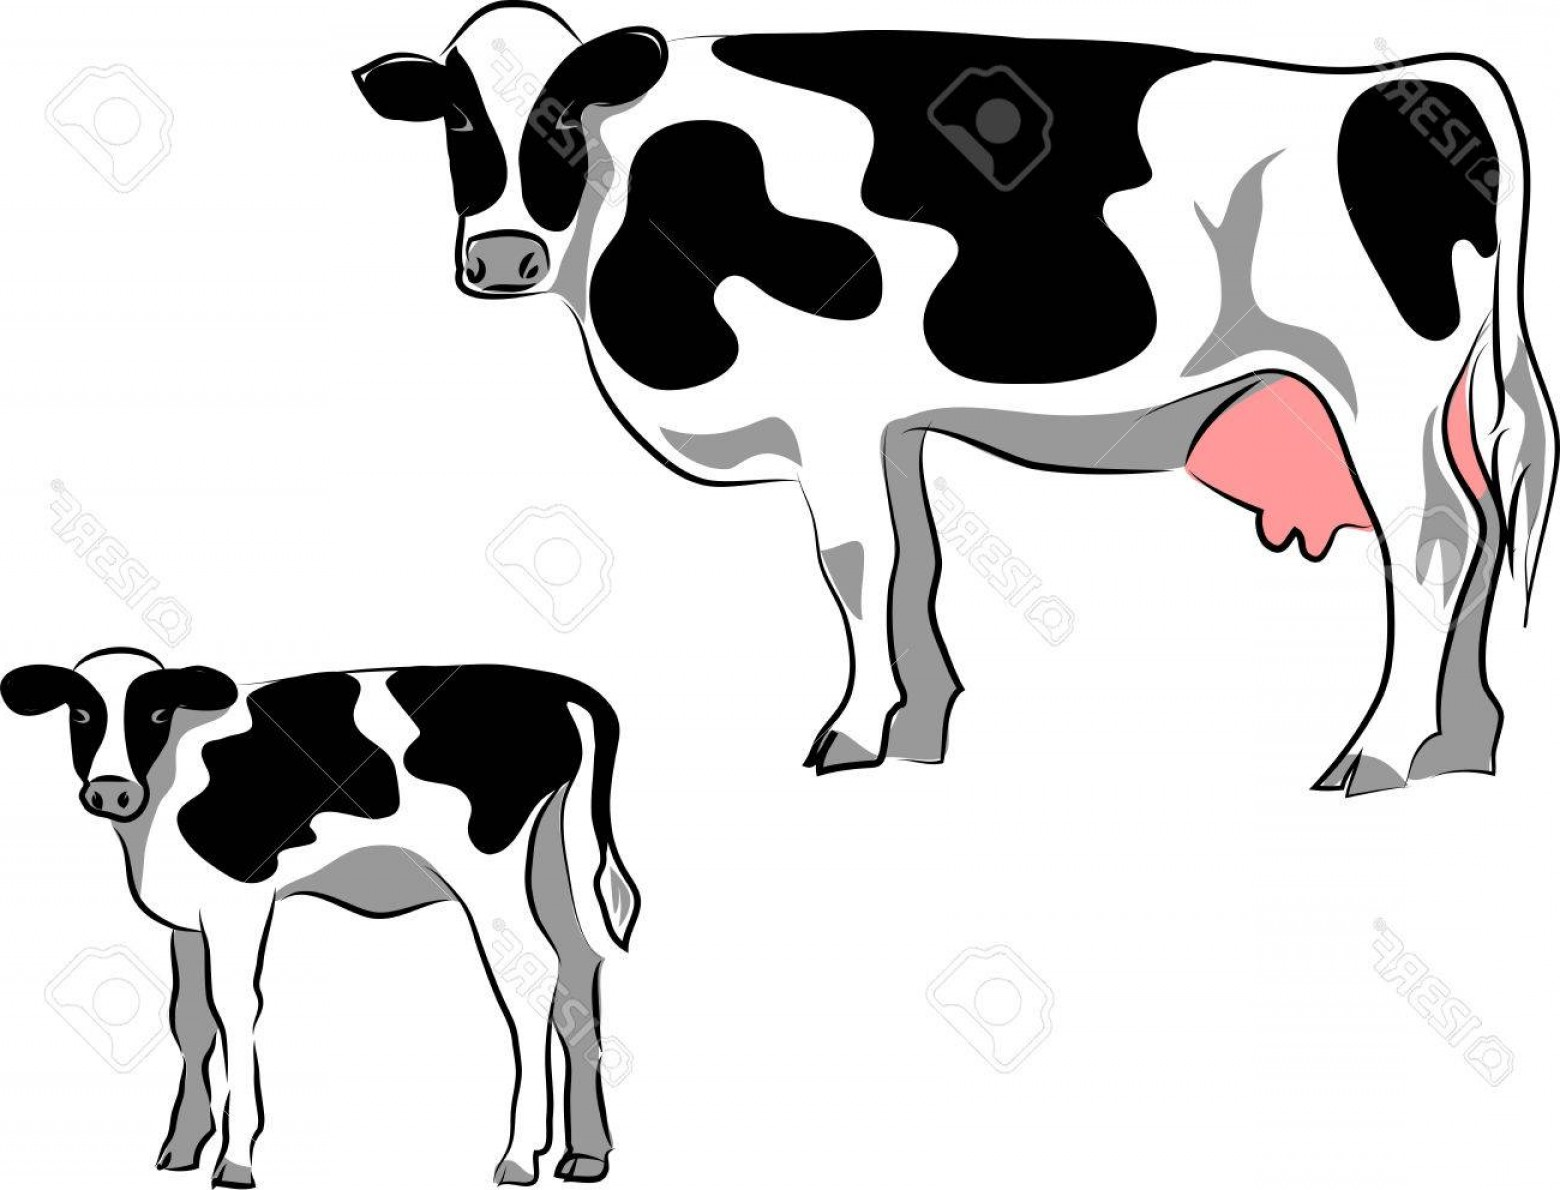 1560x1190 Calf And Cow Silhouette Vector Arenawp